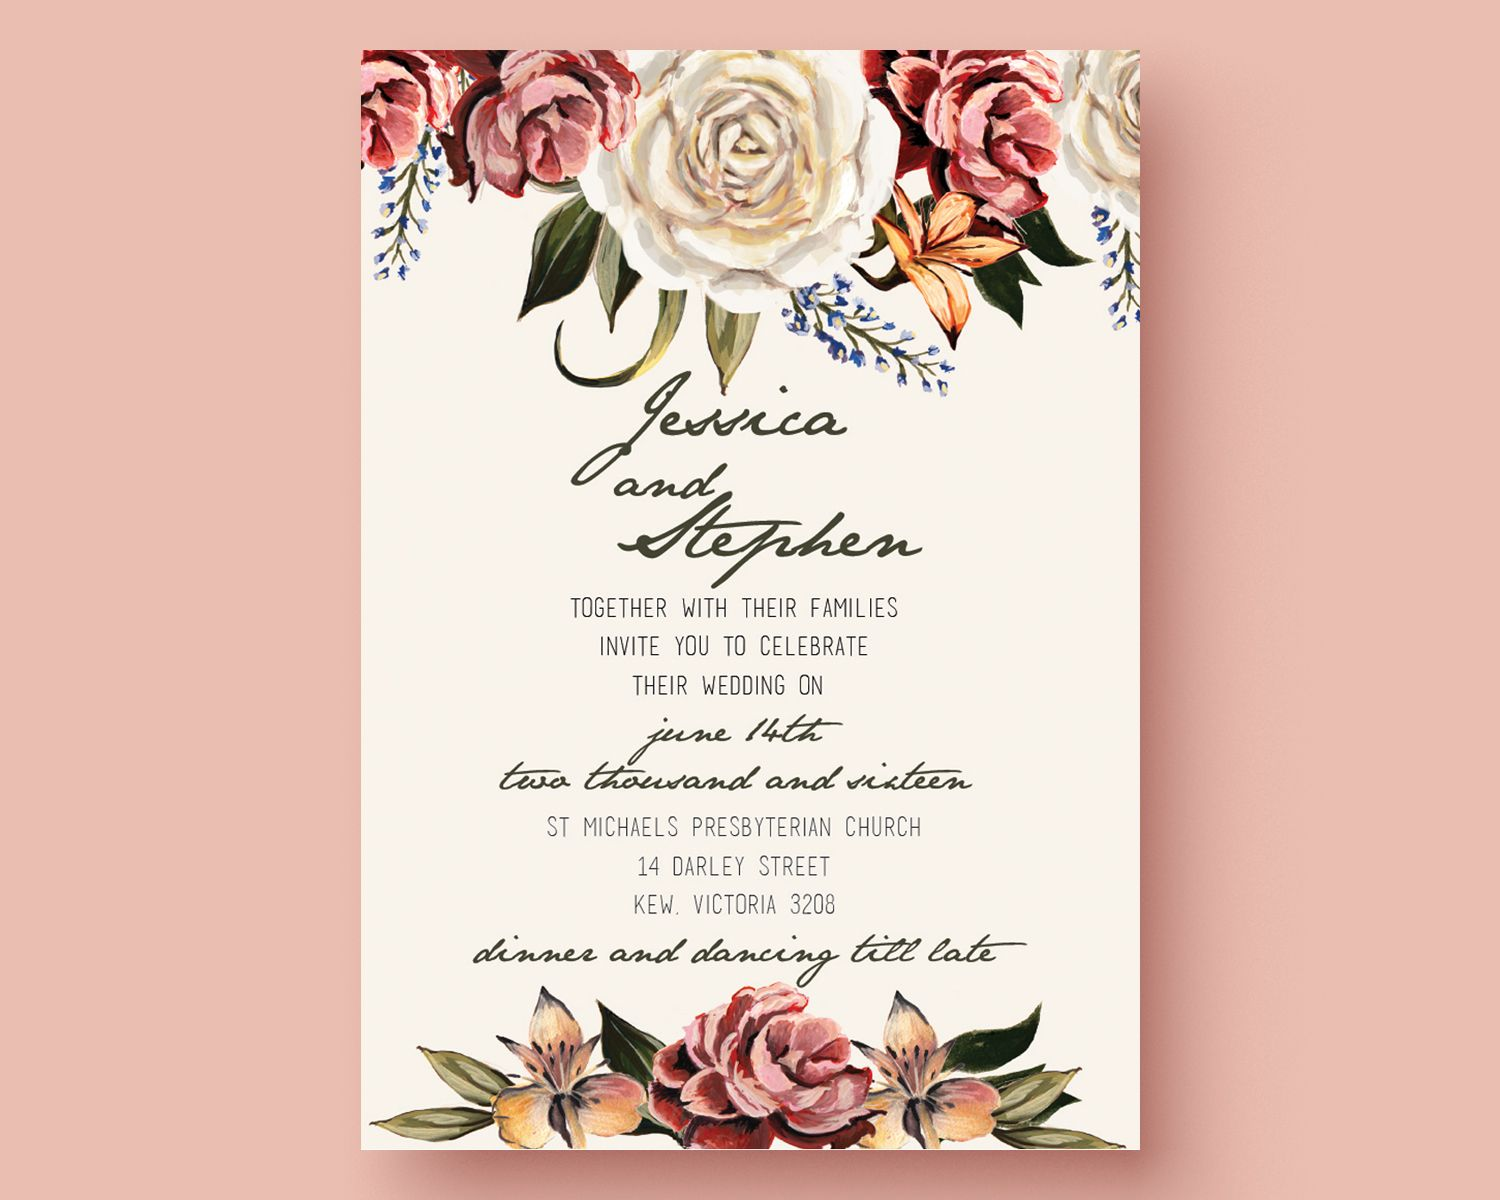 Wedding Invitation Video Templates After Effects